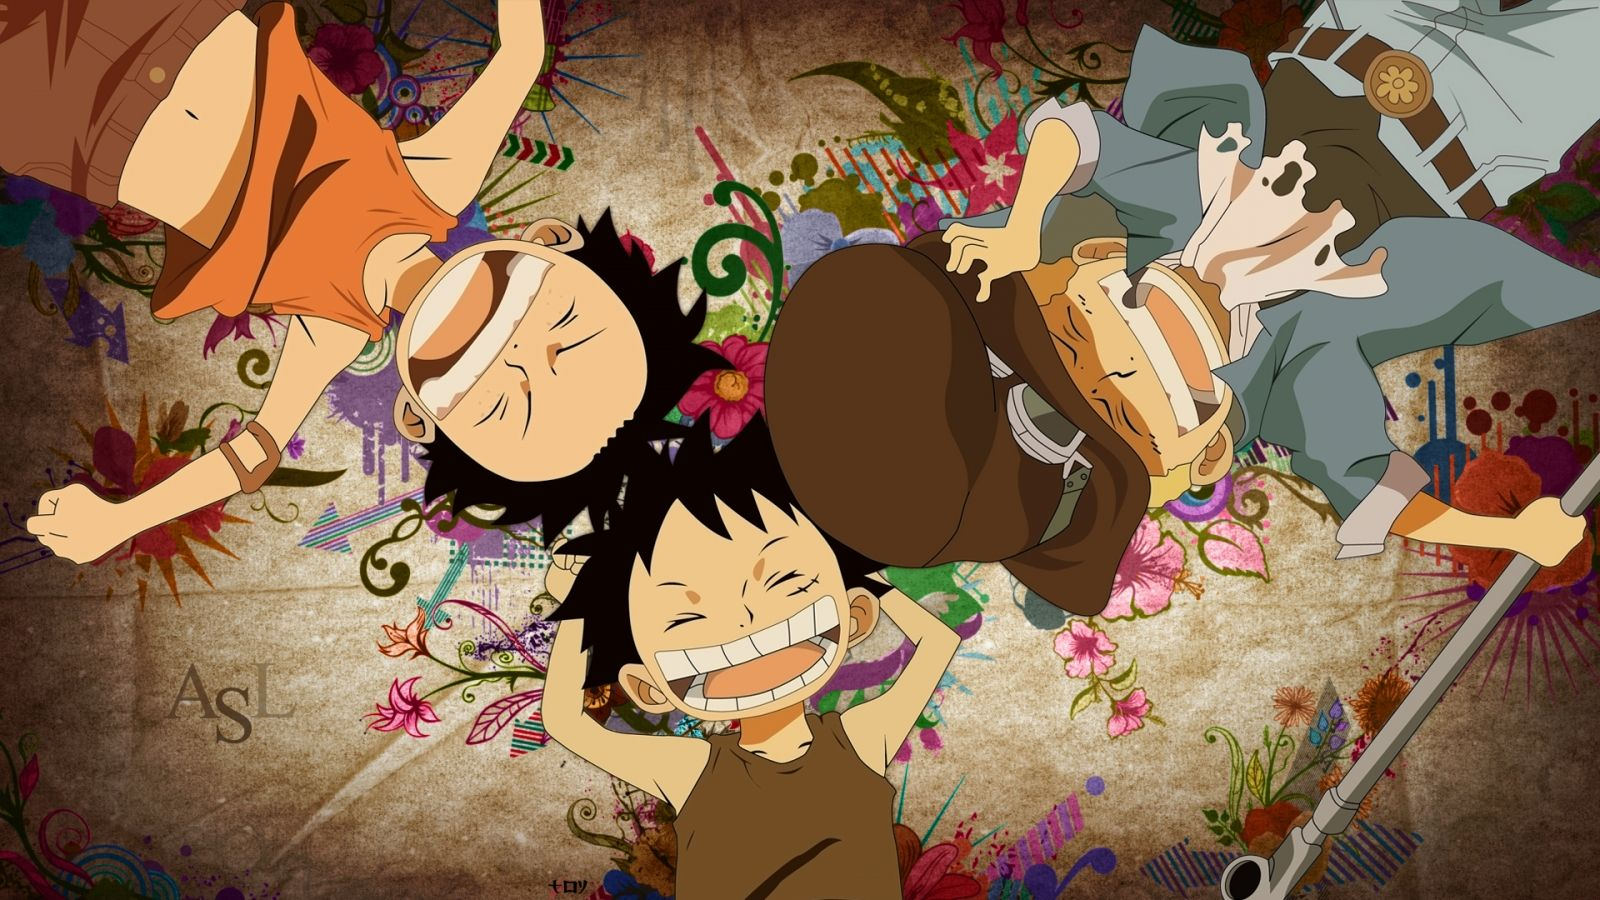 One Piece Luffy And Ace And Sabo Wallpaper 871 Frenzia Com Anime One Piece